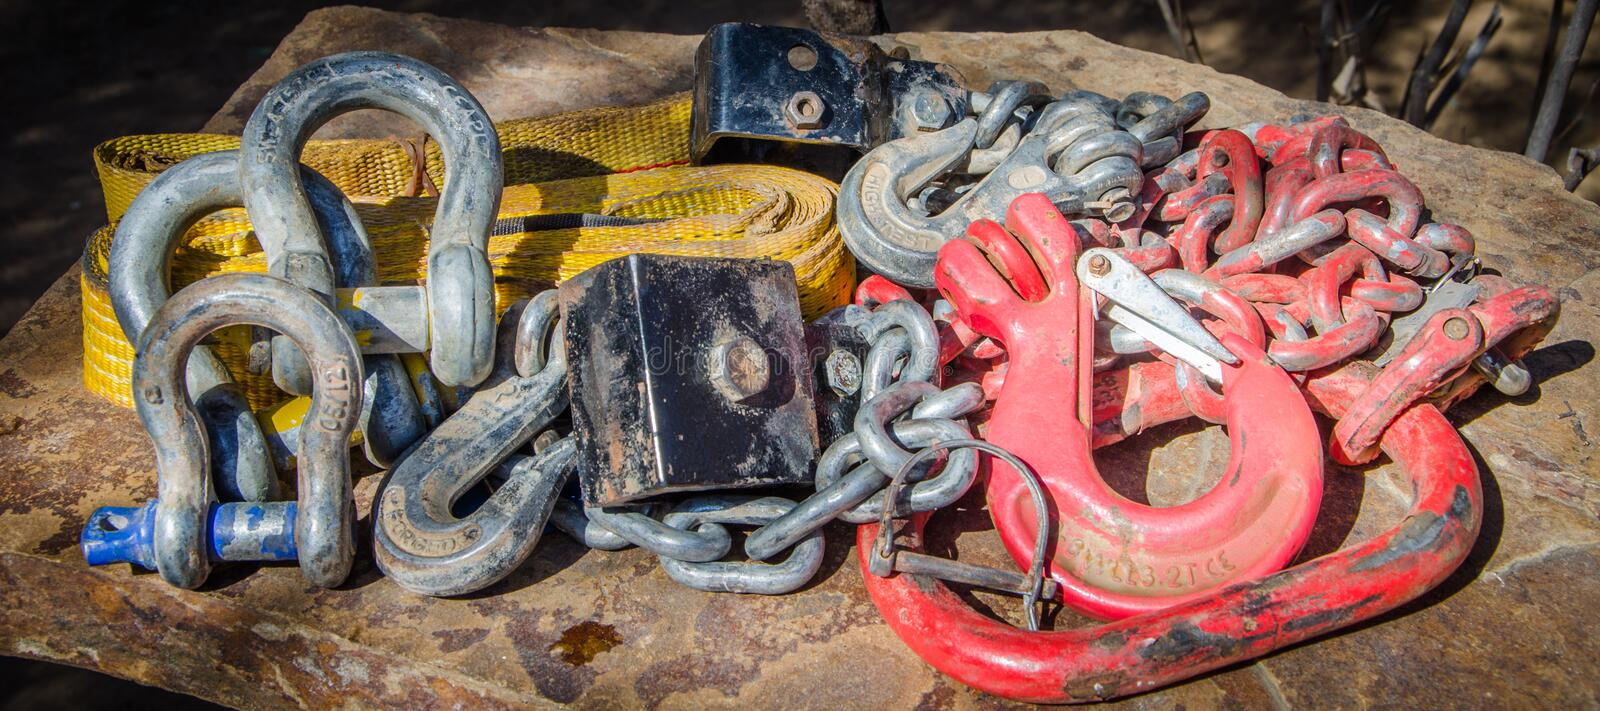 Heavy duty recovery equipment for 4x4 offroad use with chains, shackles and belts outdoors.  royalty free stock photography